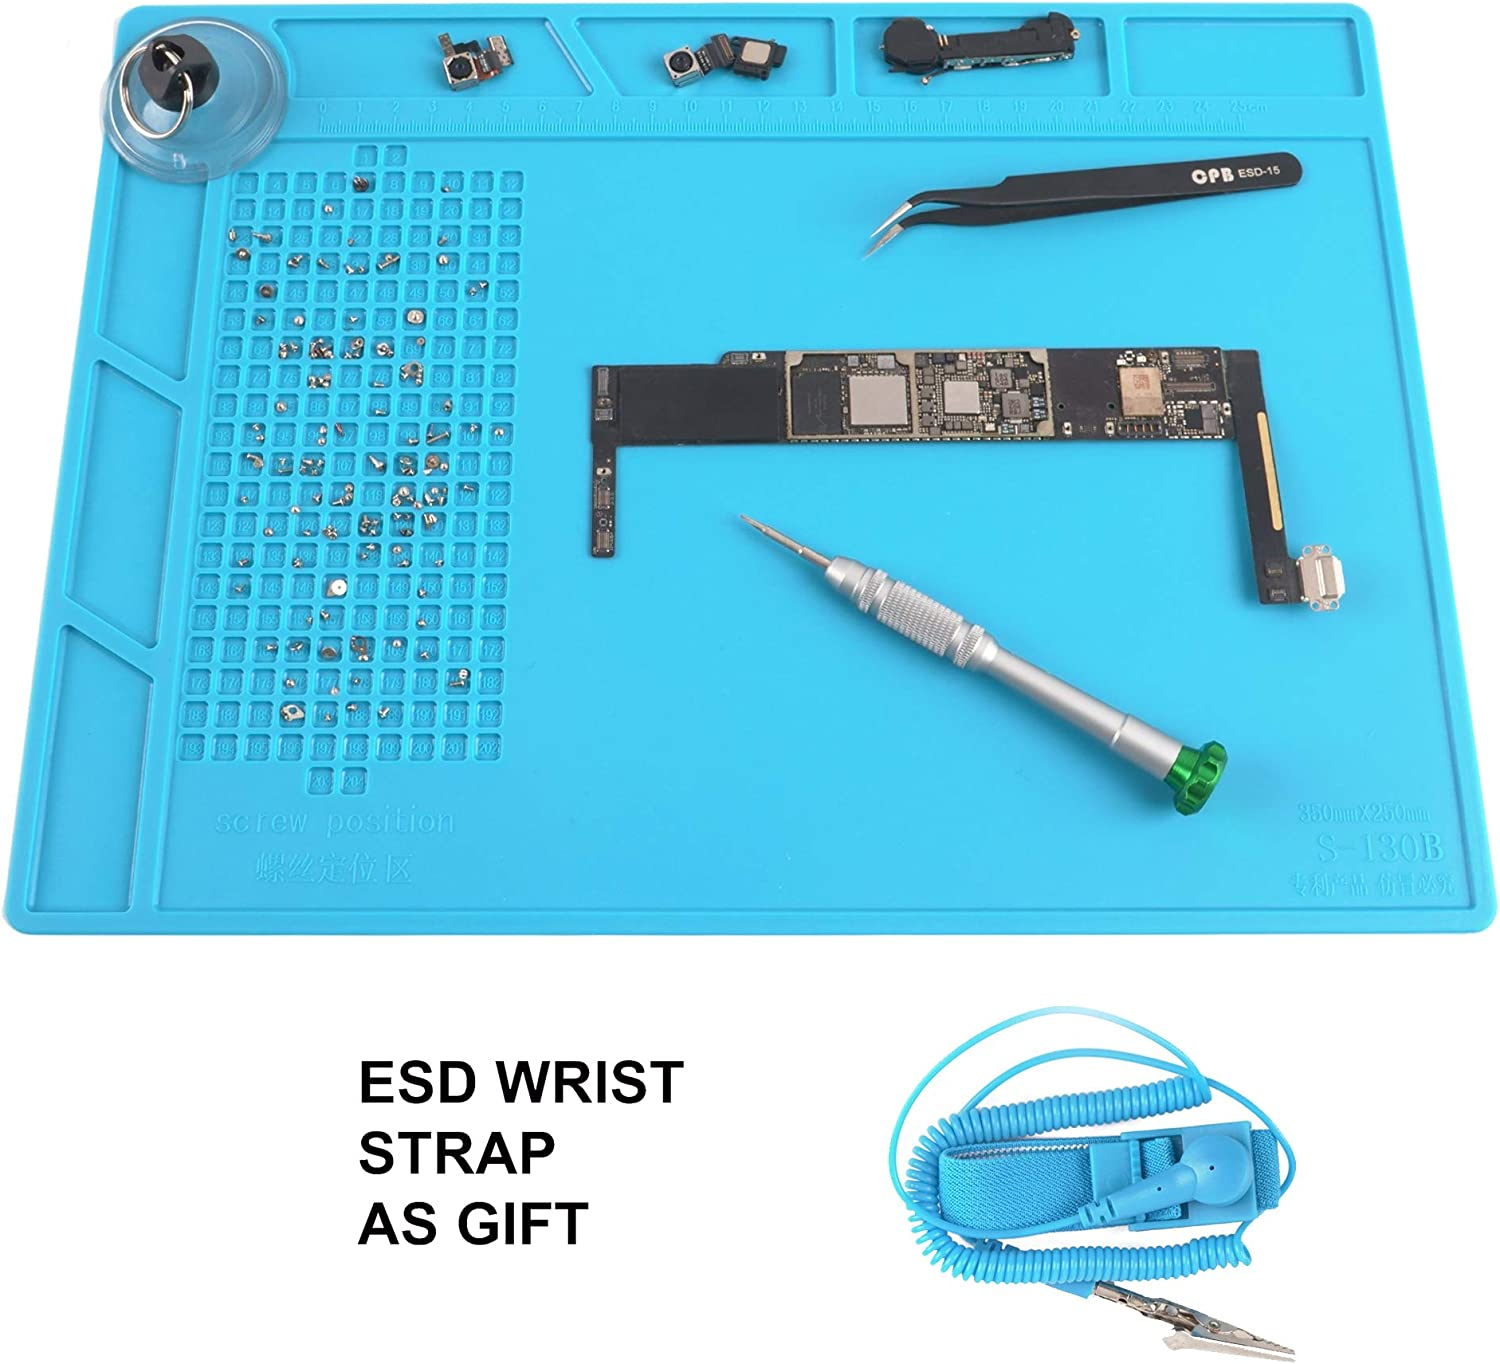 CPB Soldering Anti Static Electronics Repair None Magnetic Mat for Screw Silicone Work Mat with ESD Wrist Strap Compatible with Iphone Ipad Macbook Laptop Computer Soldering Iron Size:13.7 x 9.8 inch